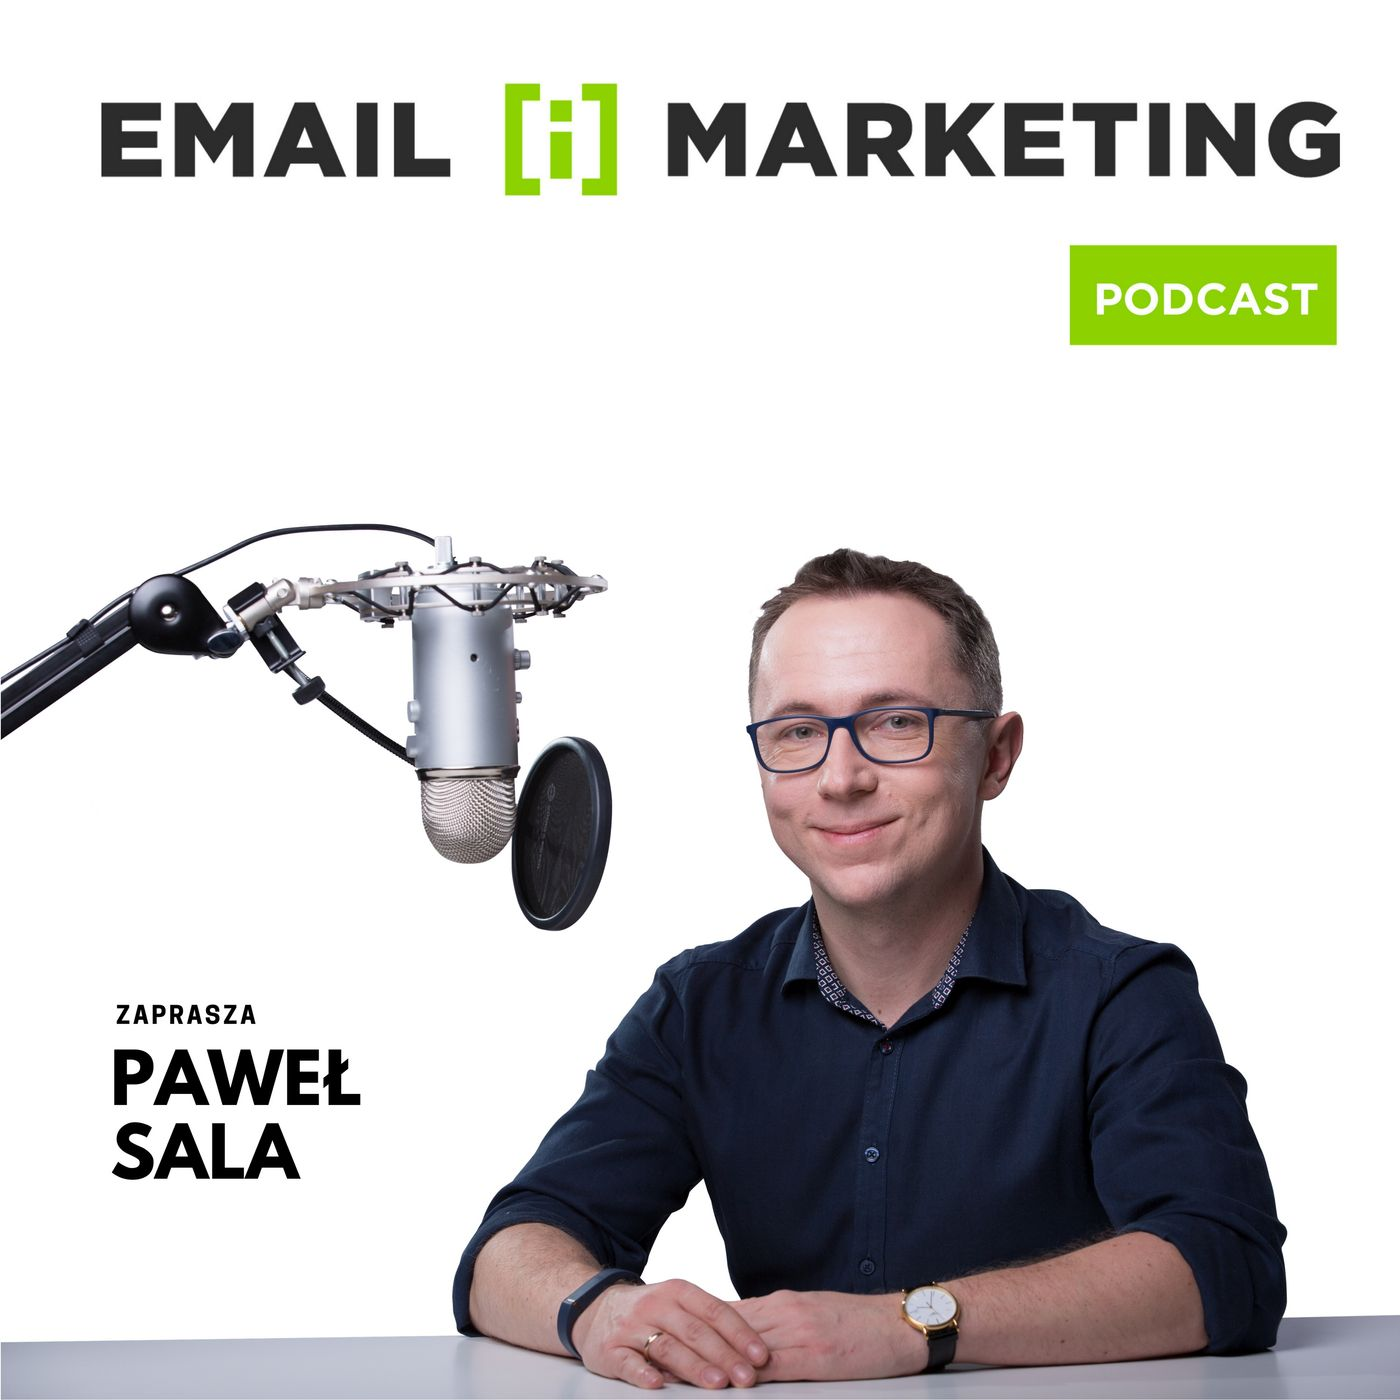 Email [i] Marketing Podcast